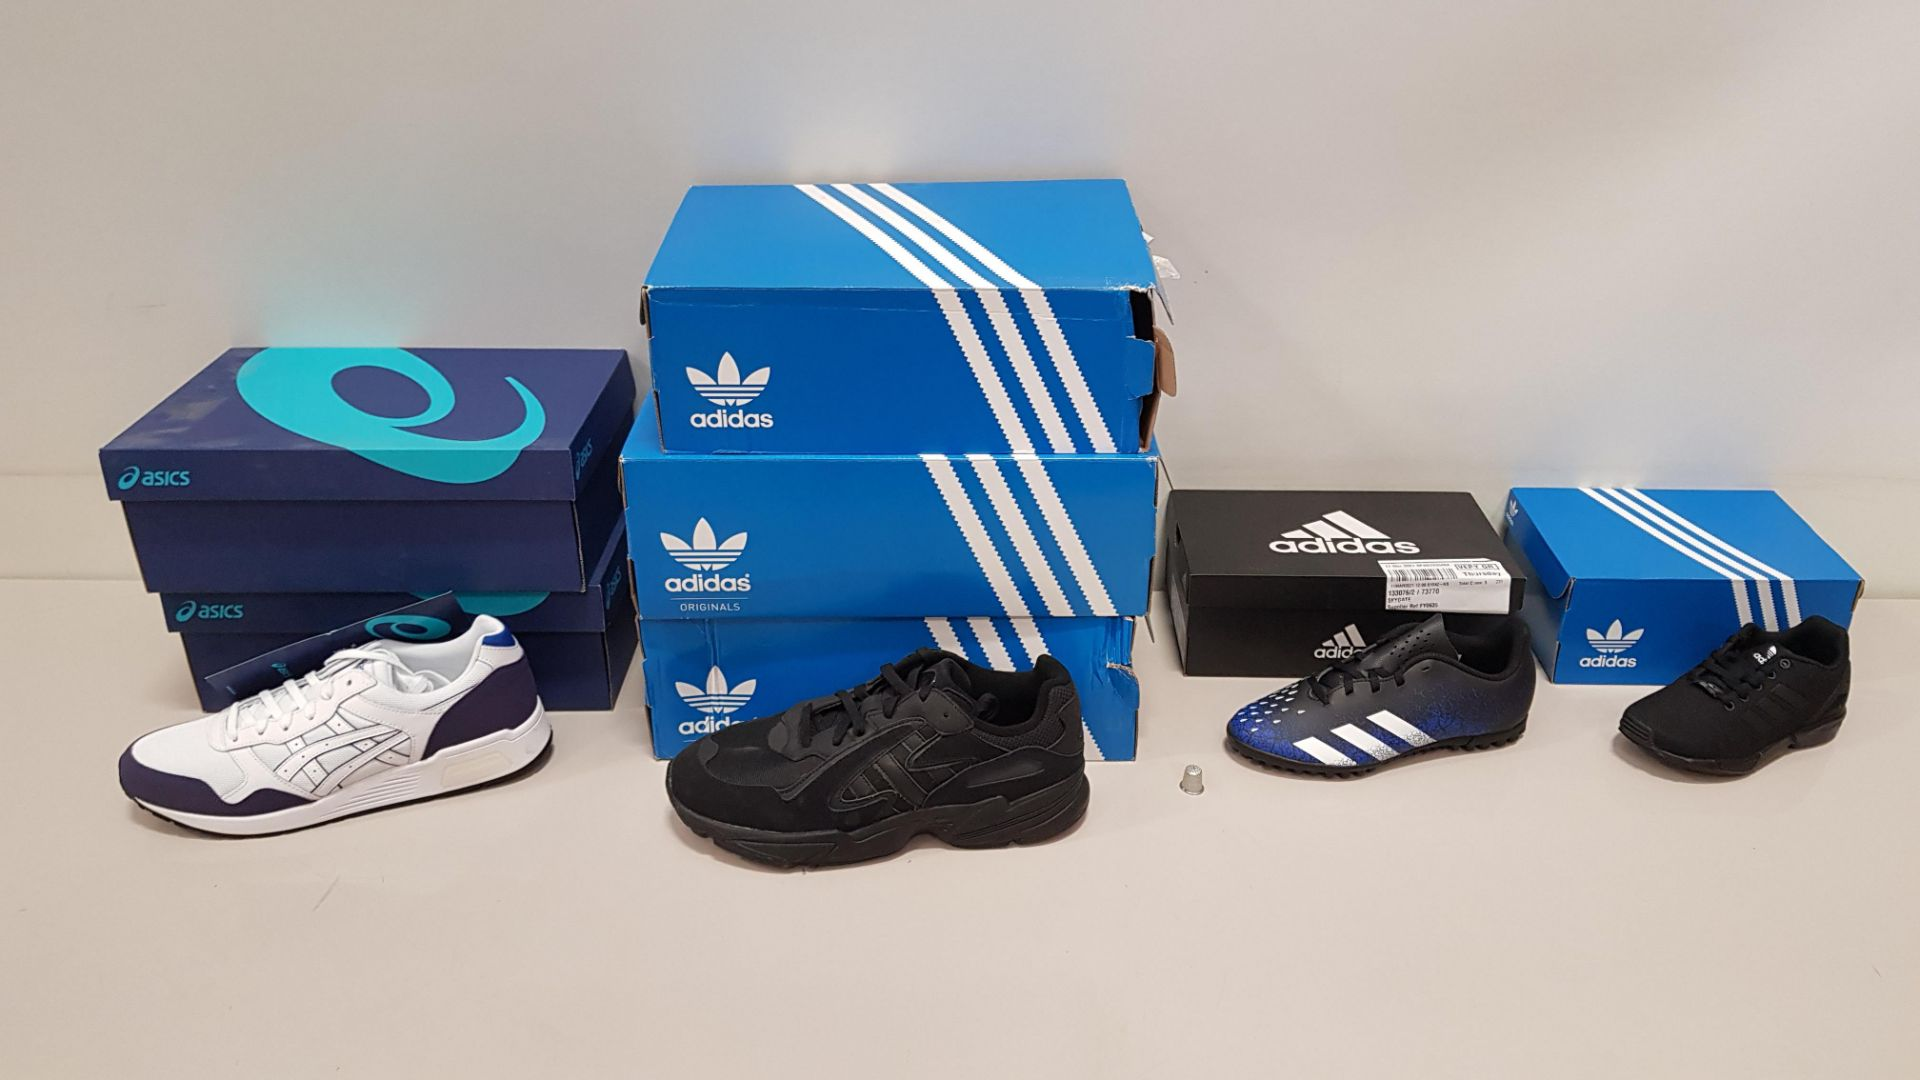 7 PIECE SHOE LOT CONTAINING 2 X ASICS LYTE TRAINERS UK SIZE 9, 3 X ADIDAS YUNG 96 CHASM TRAINERS